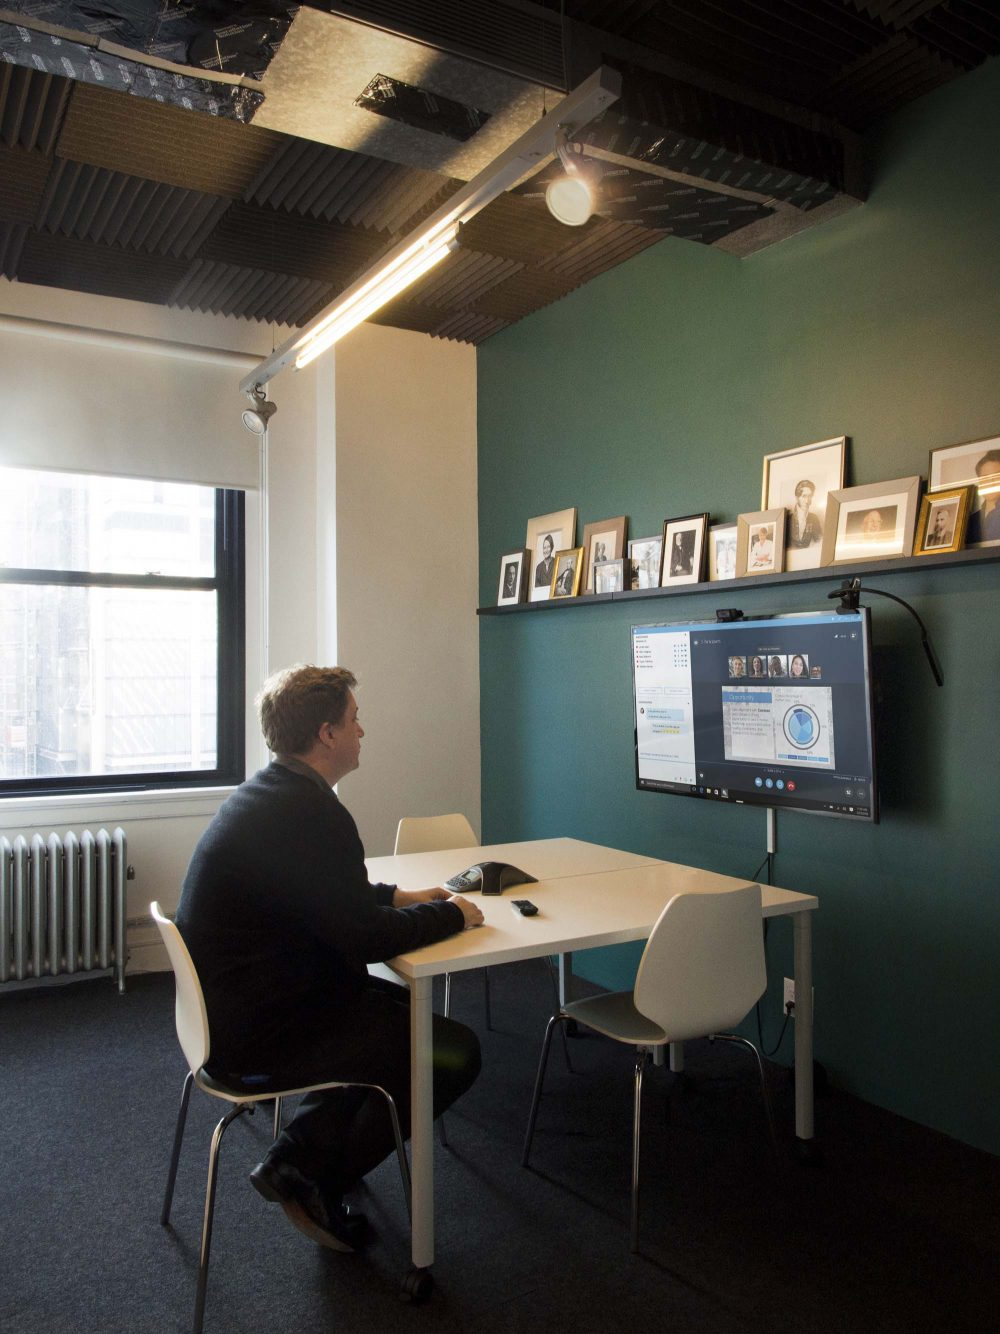 The Parlor enables teleconferencing capabilities without excess noise from the office